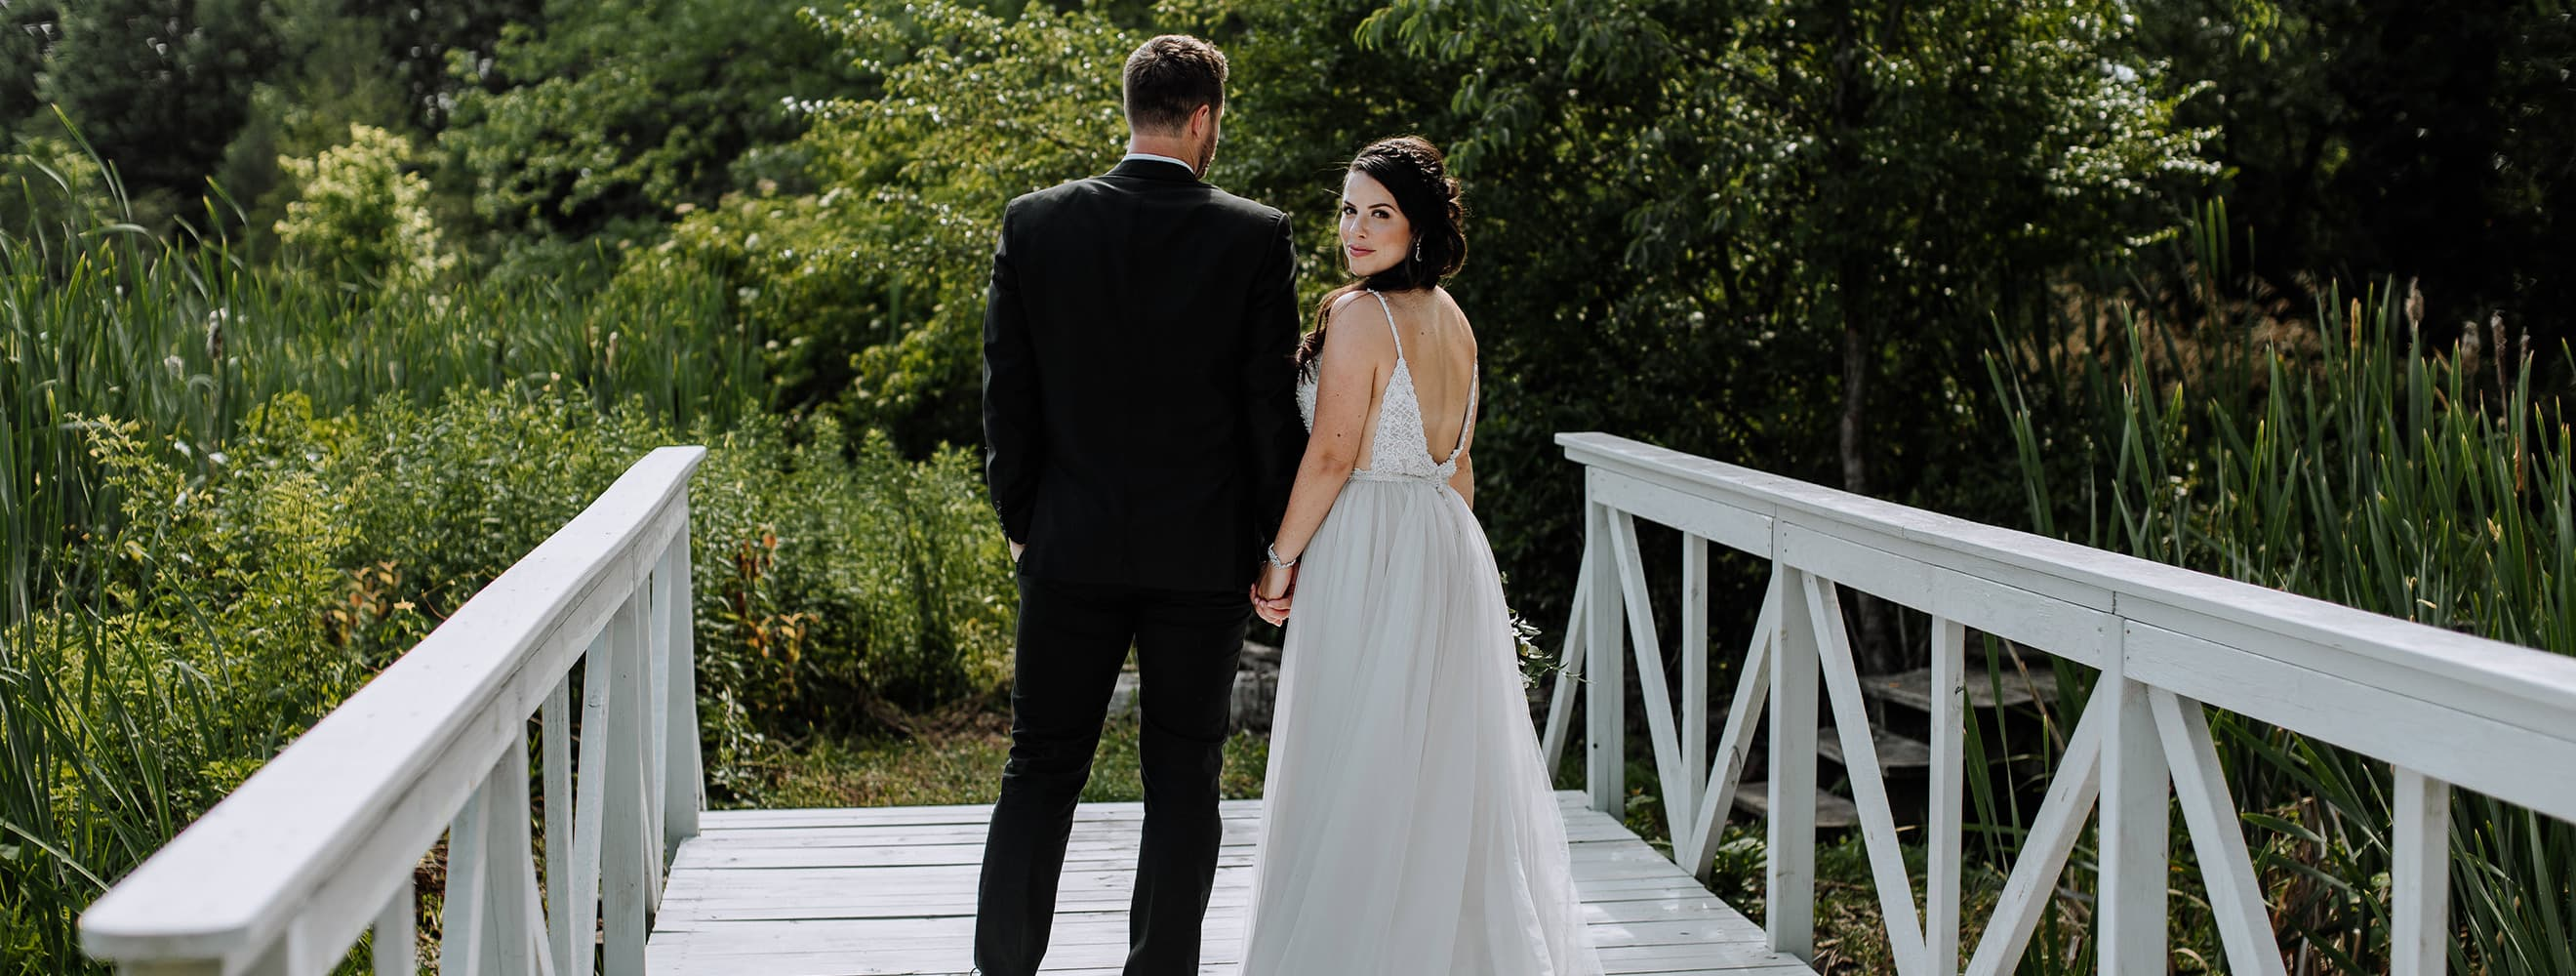 newlywed couple on bridge with bride looking back over shoulder